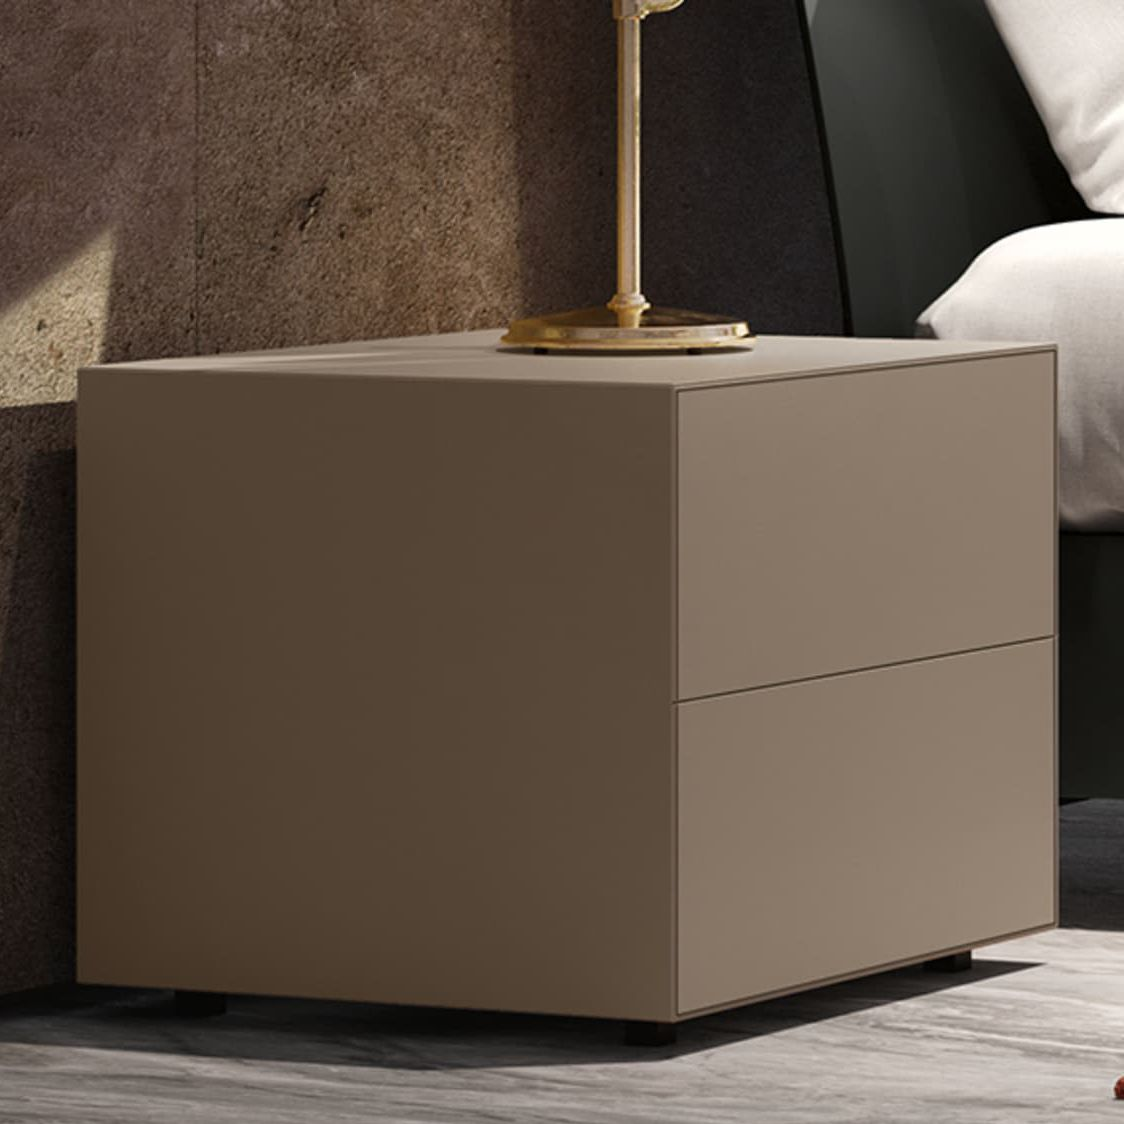 Picture of: Contemporary Bedside Table Gala 02 Febal Casa Lacquered Wood Square With Drawer